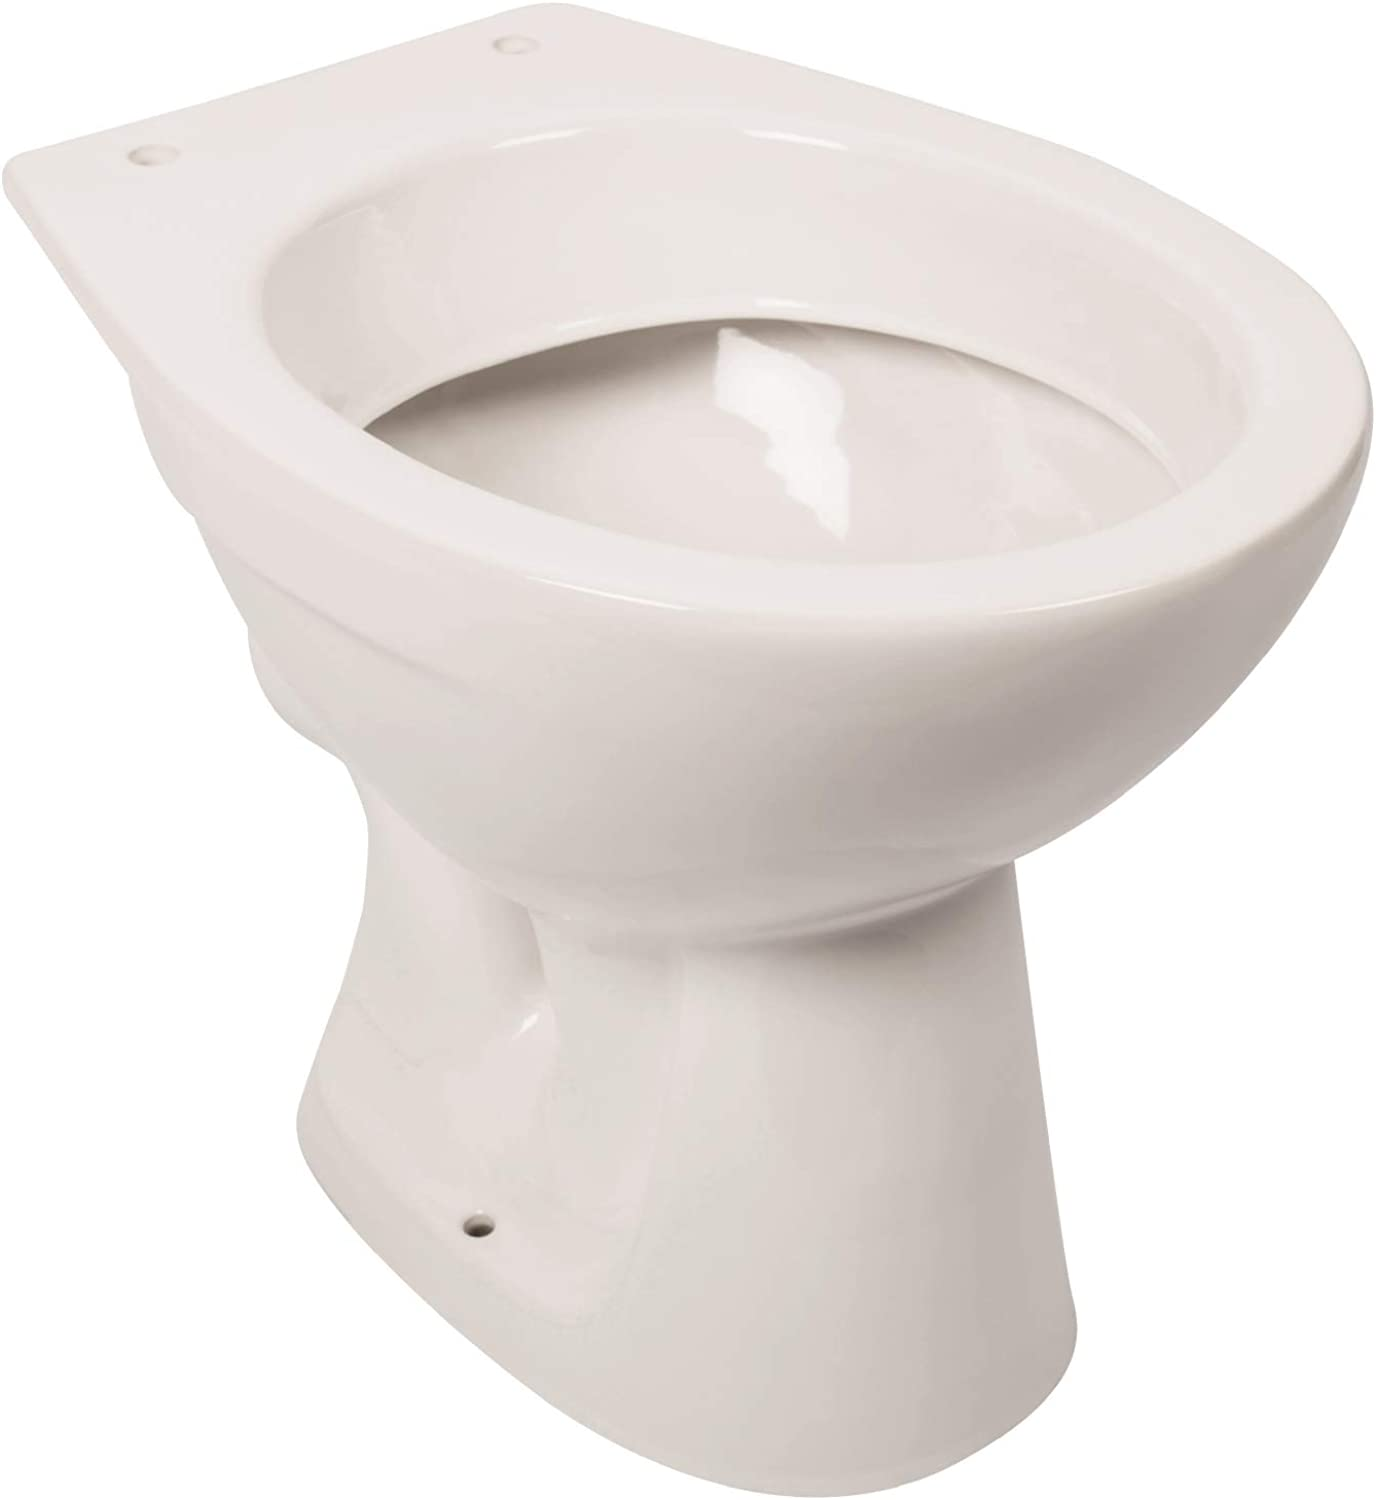 Sanitop-Wingenroth 56061 0 Stand-WC Barca Clean, wei,